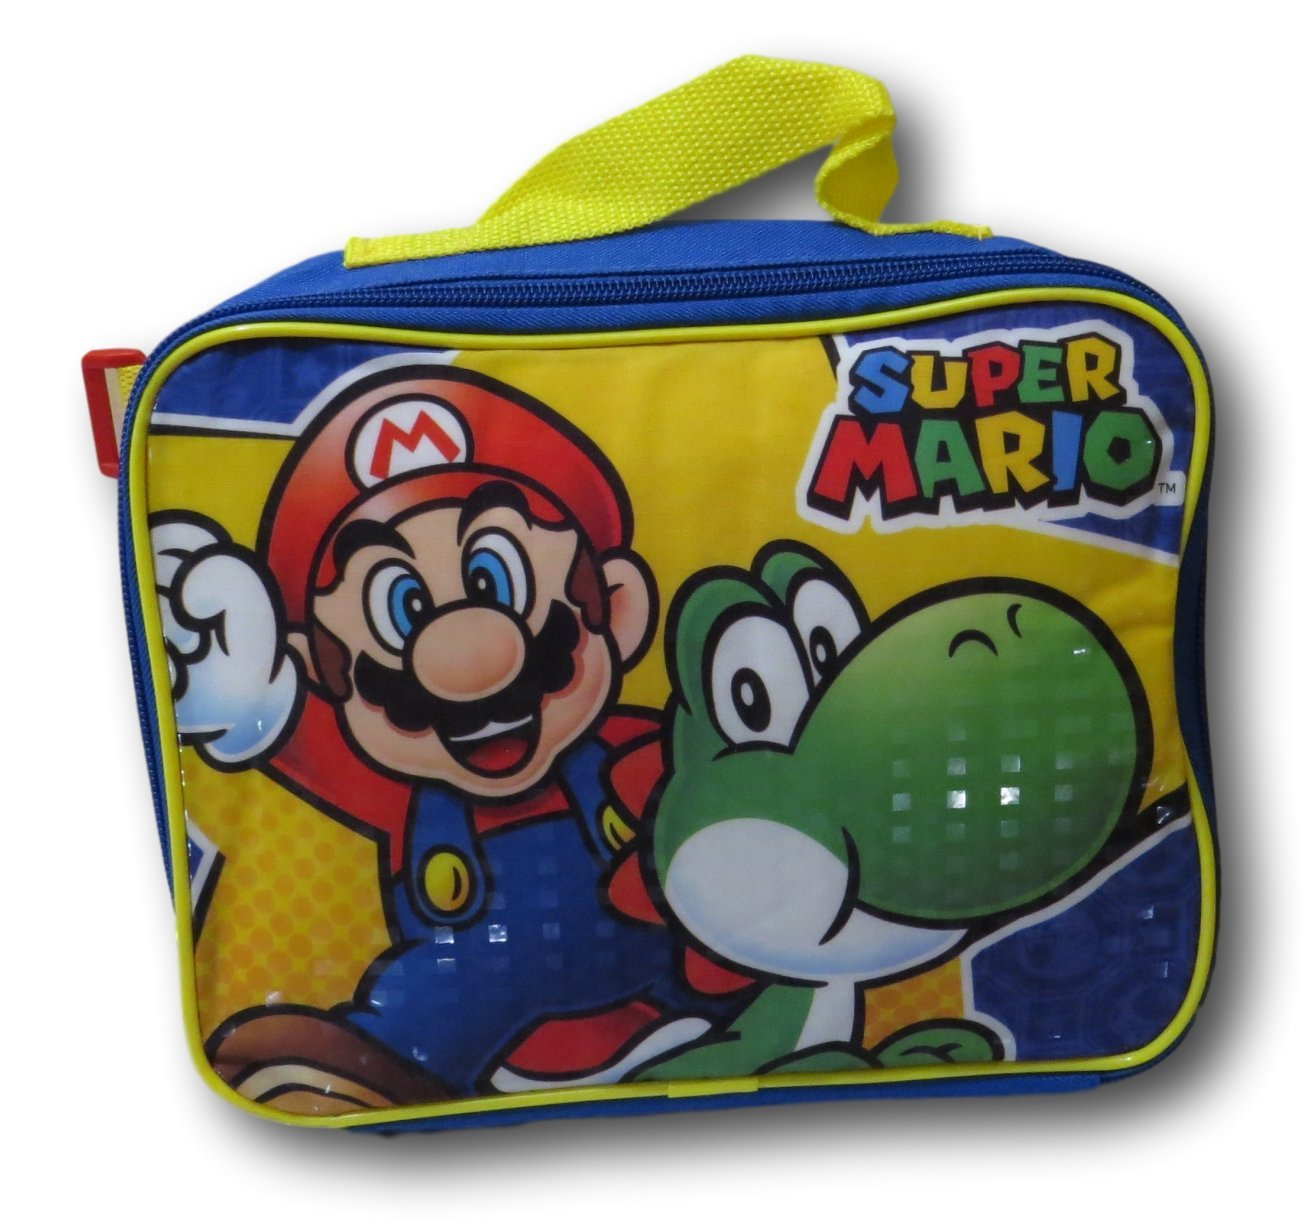 Amazon.com: Nintendo Super Mario Bros. Backpack with Detachable Insulated Lunch Box: KidsDepot